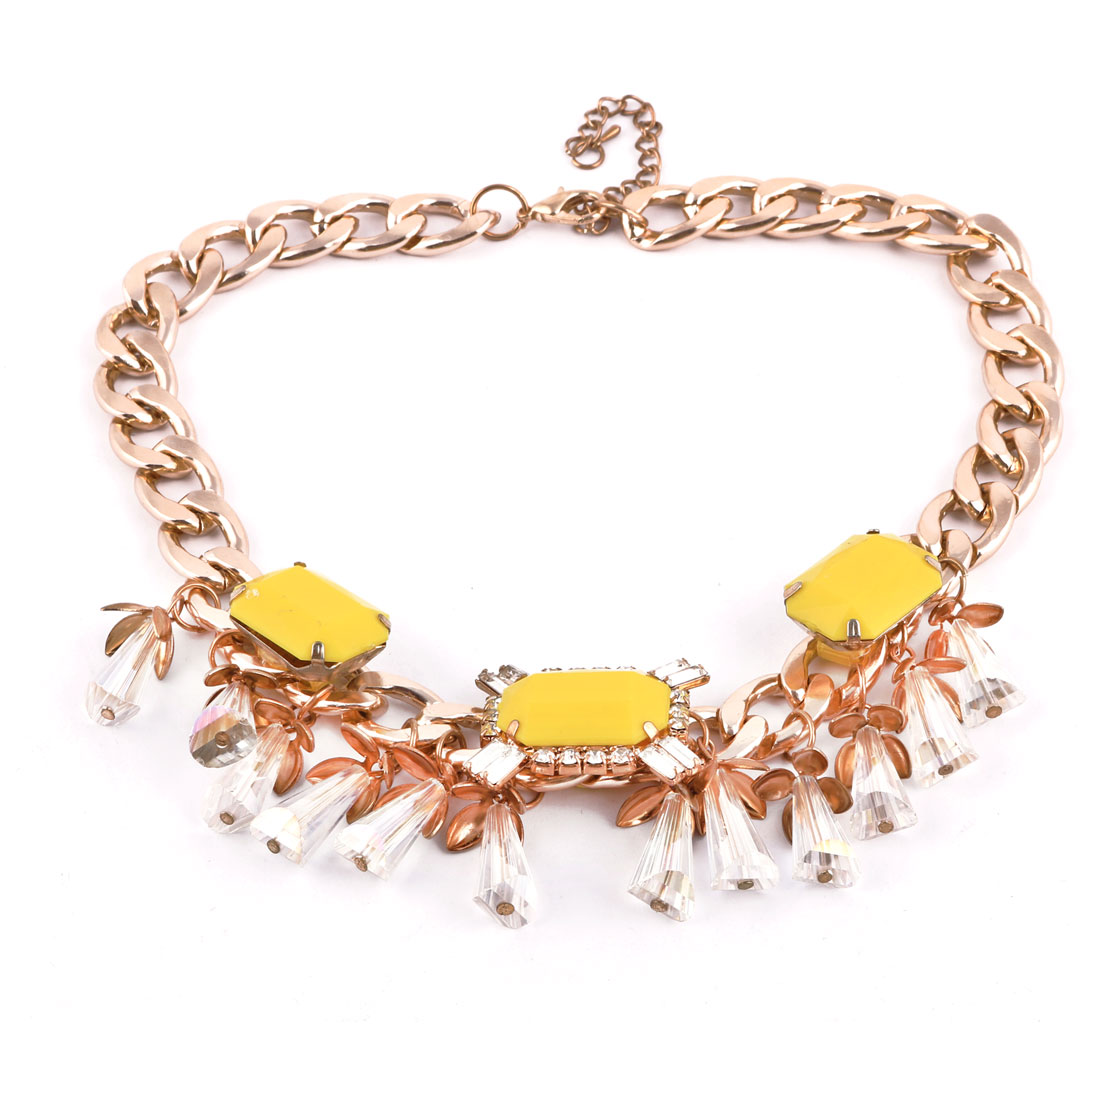 Lady Decorative Statement Necklace Neck Charm Chain Chunky Decor Yellow Gold Tone